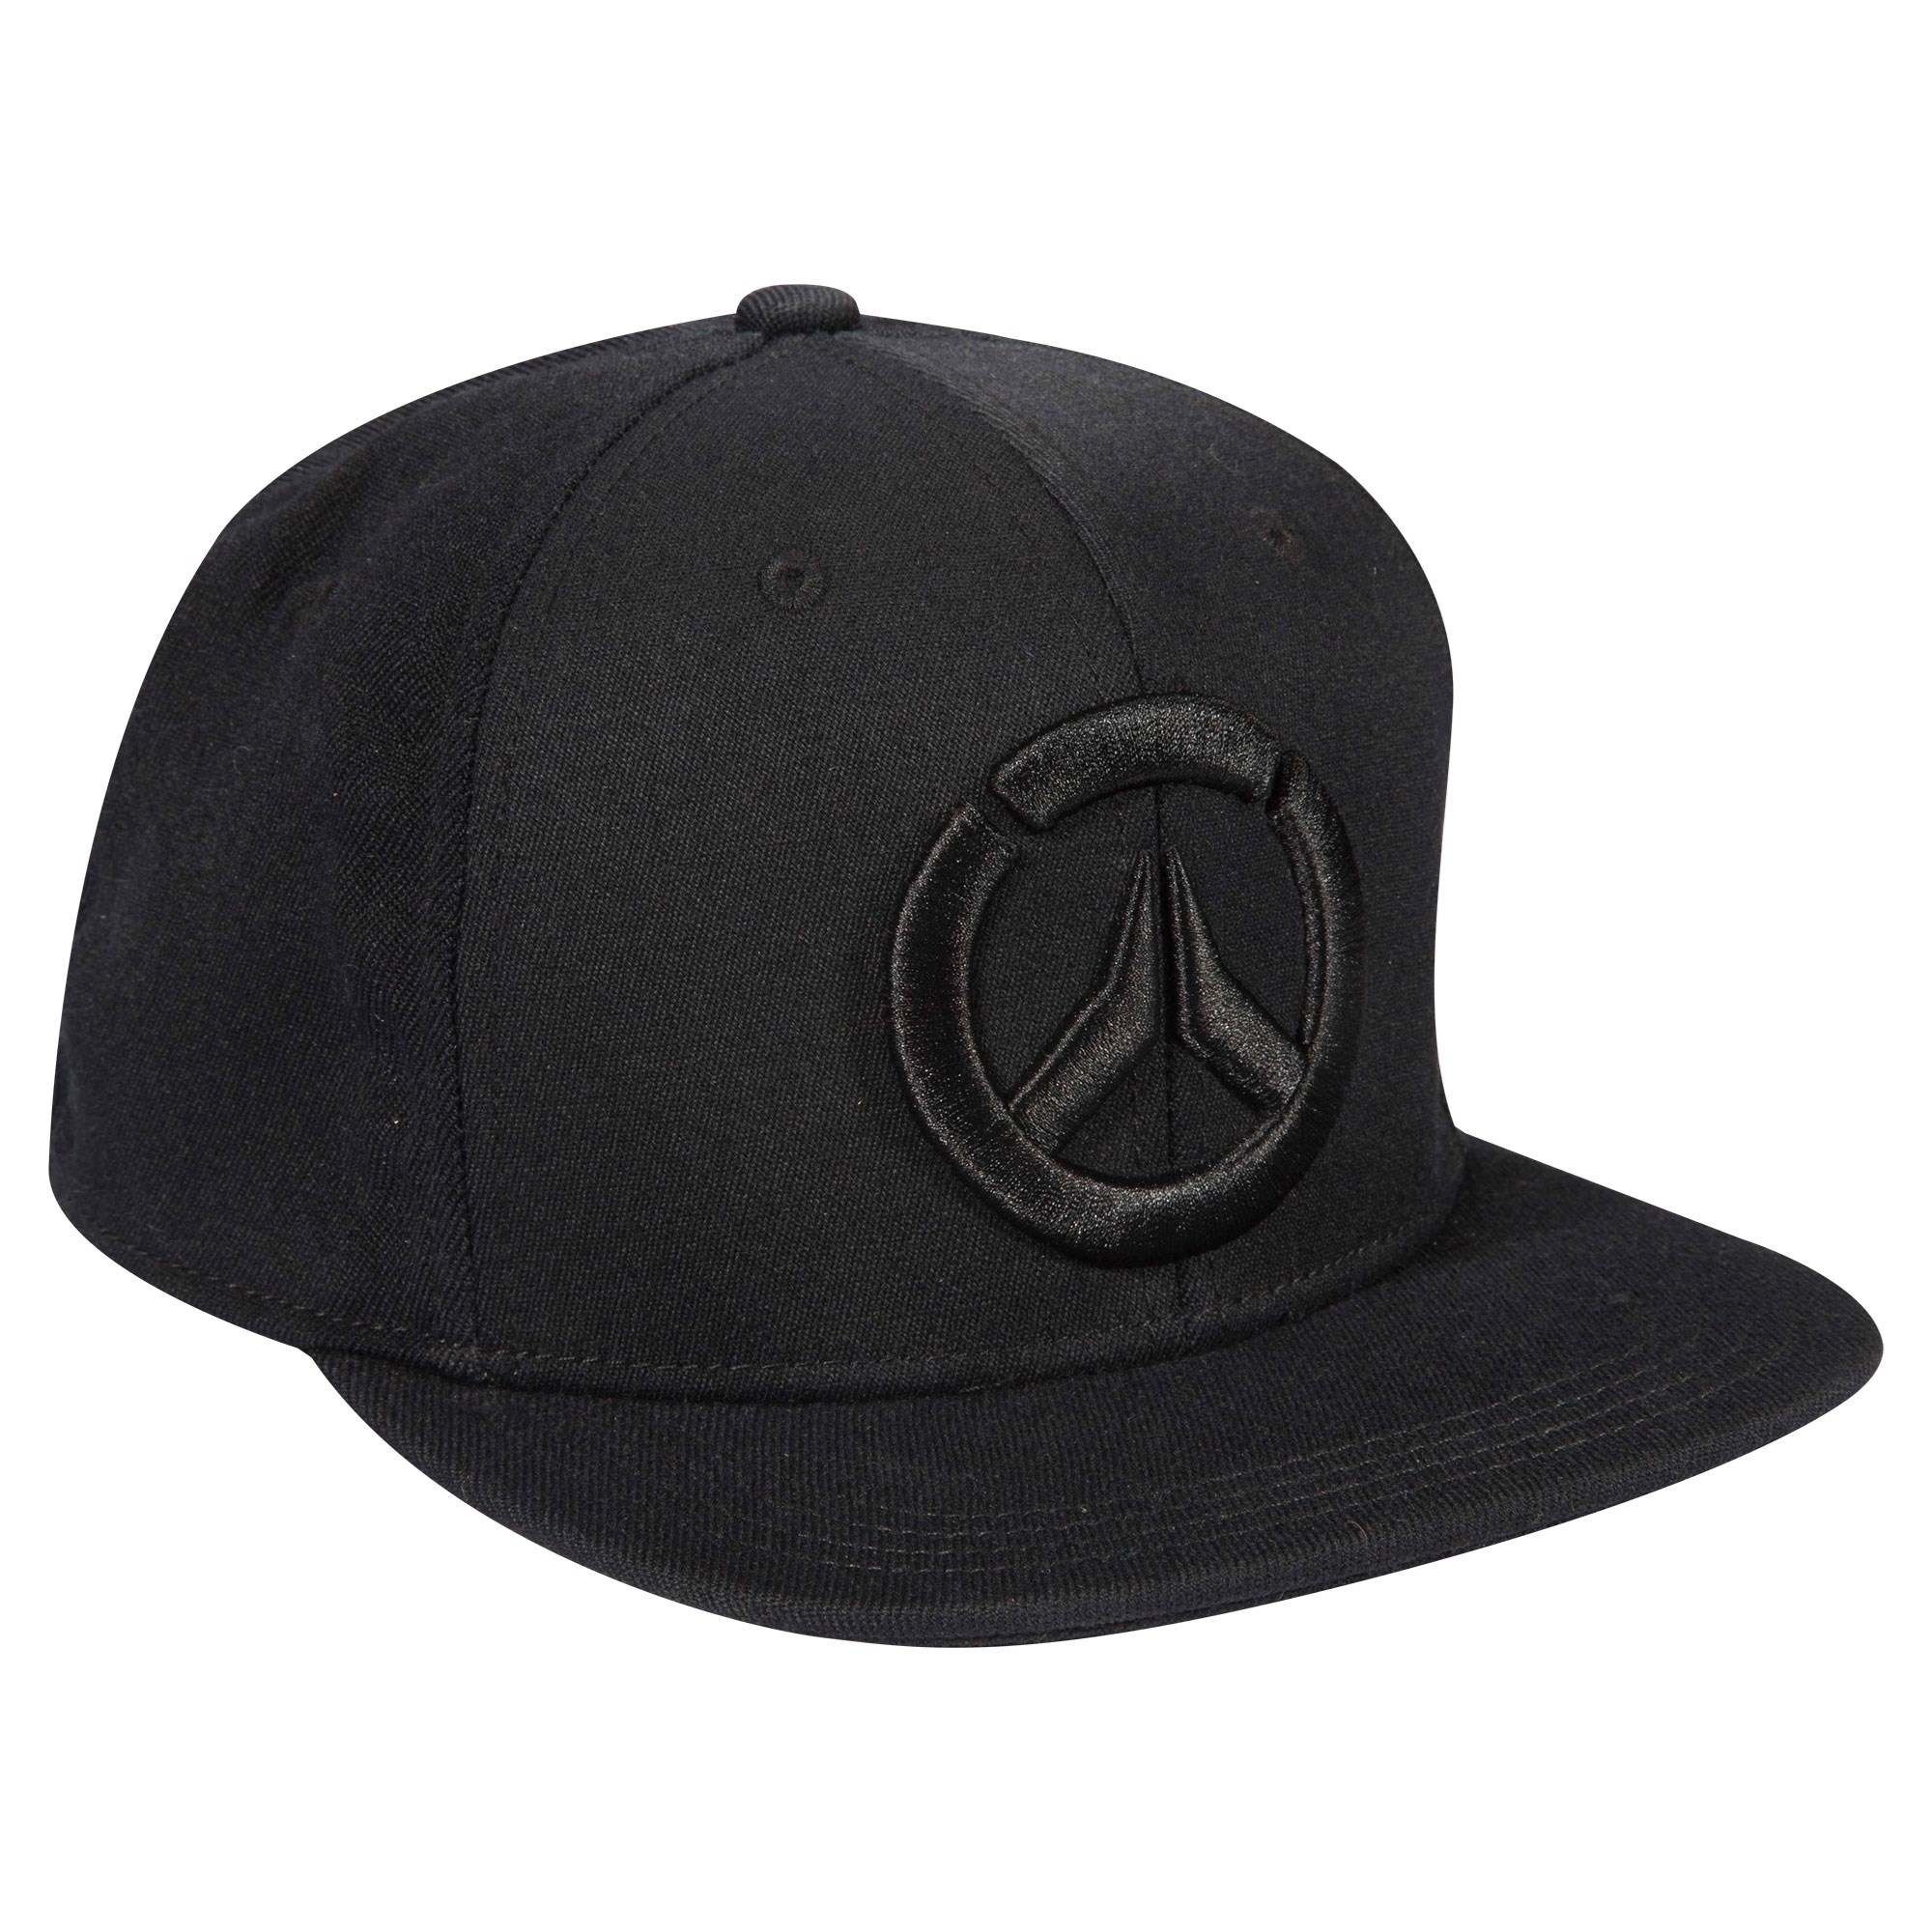 Overwatch Blackout Stretch Fit Cap